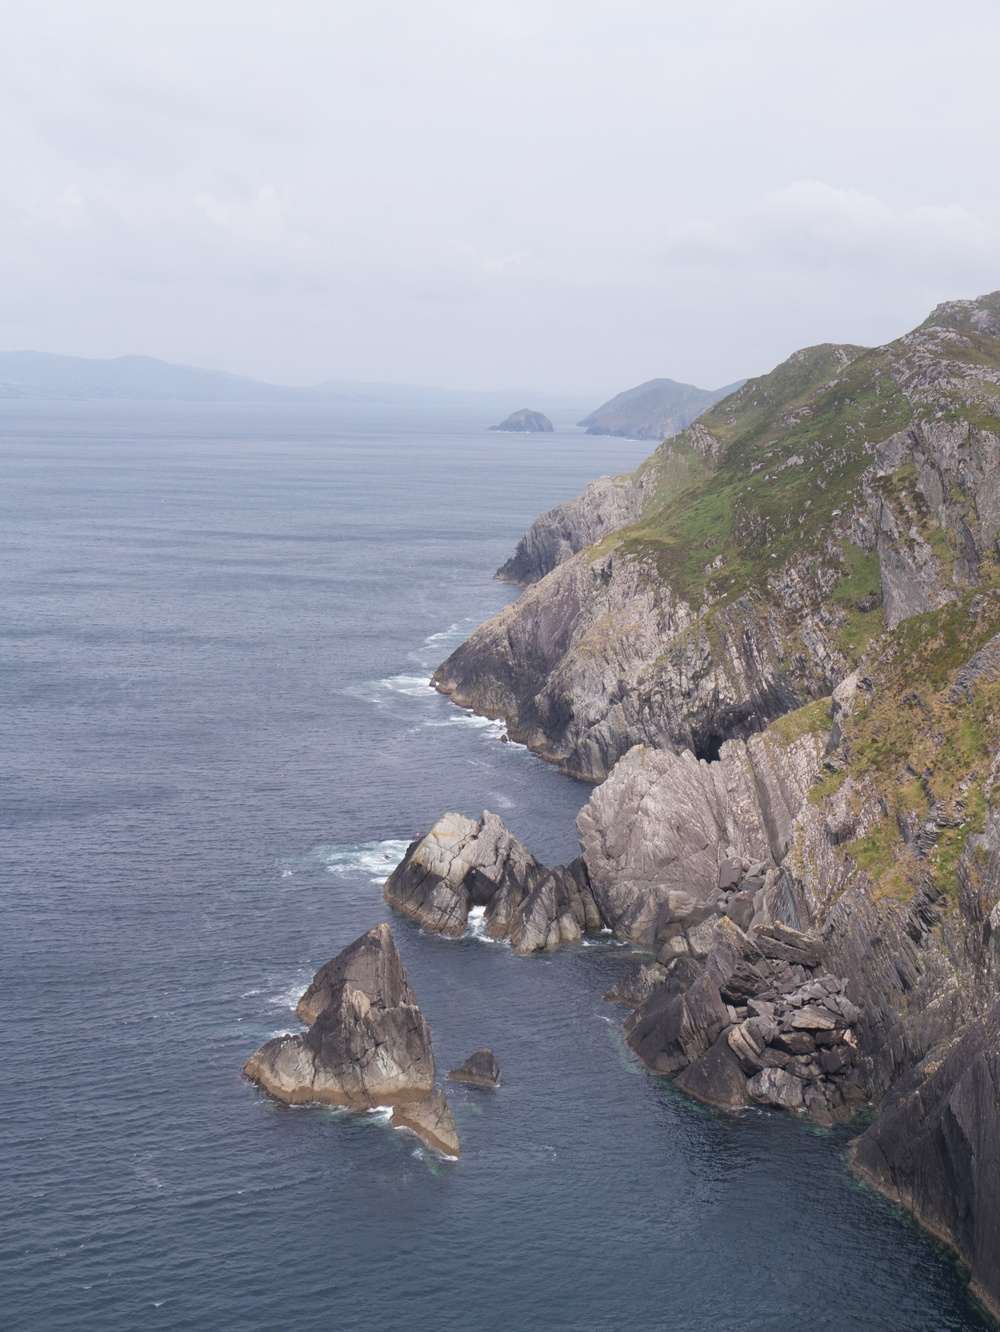 Ireland really is quite majestic. The coast has so many incredible views.